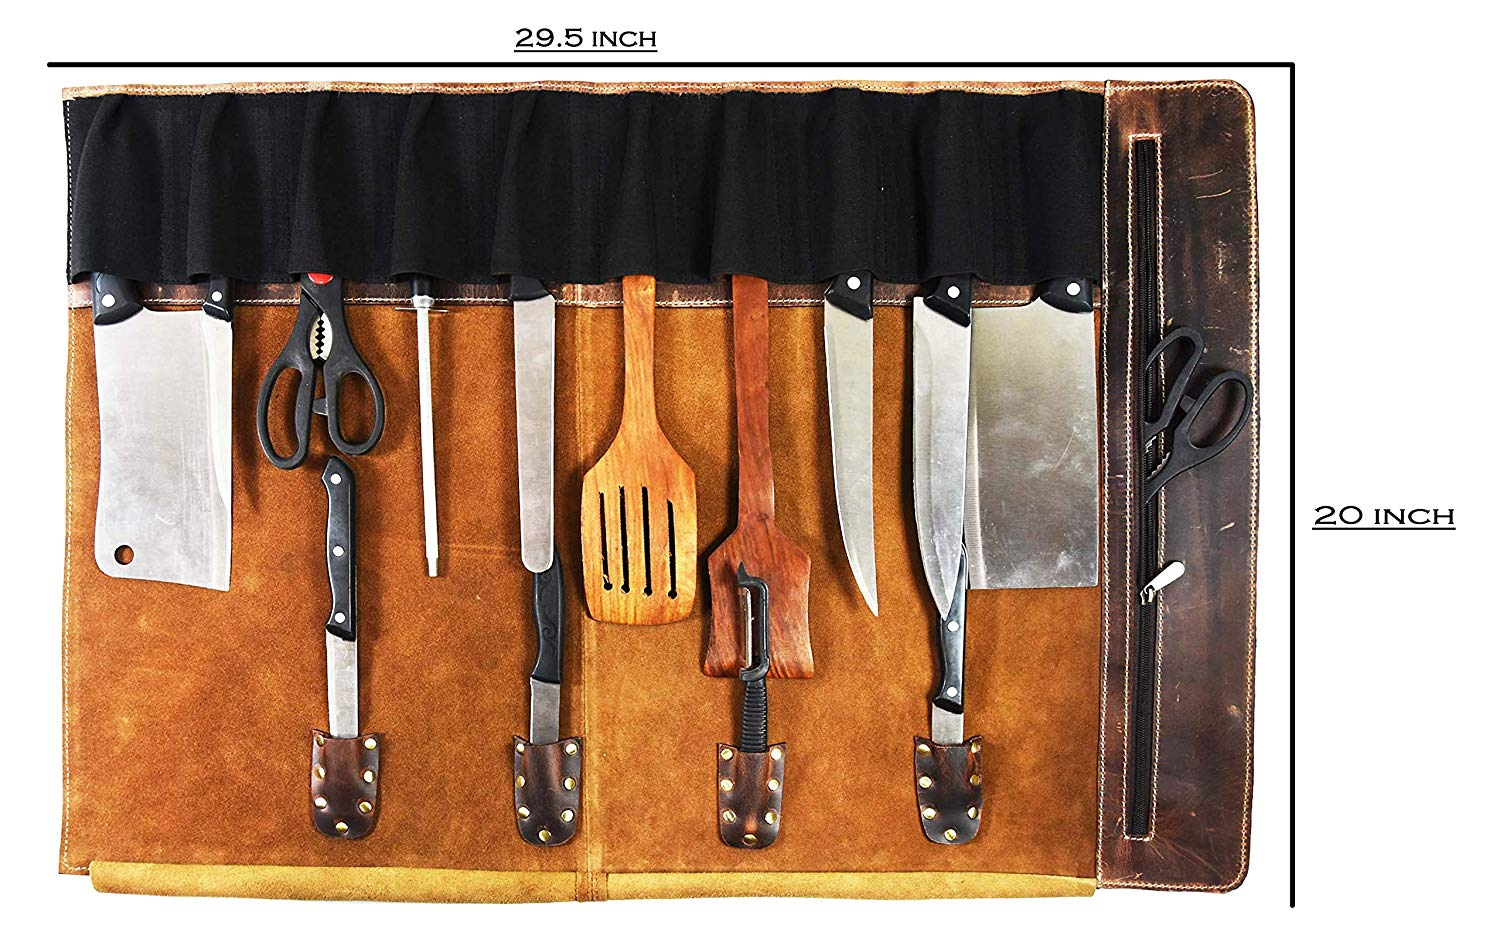 Bag for knive storage used as a knife block set and organizer